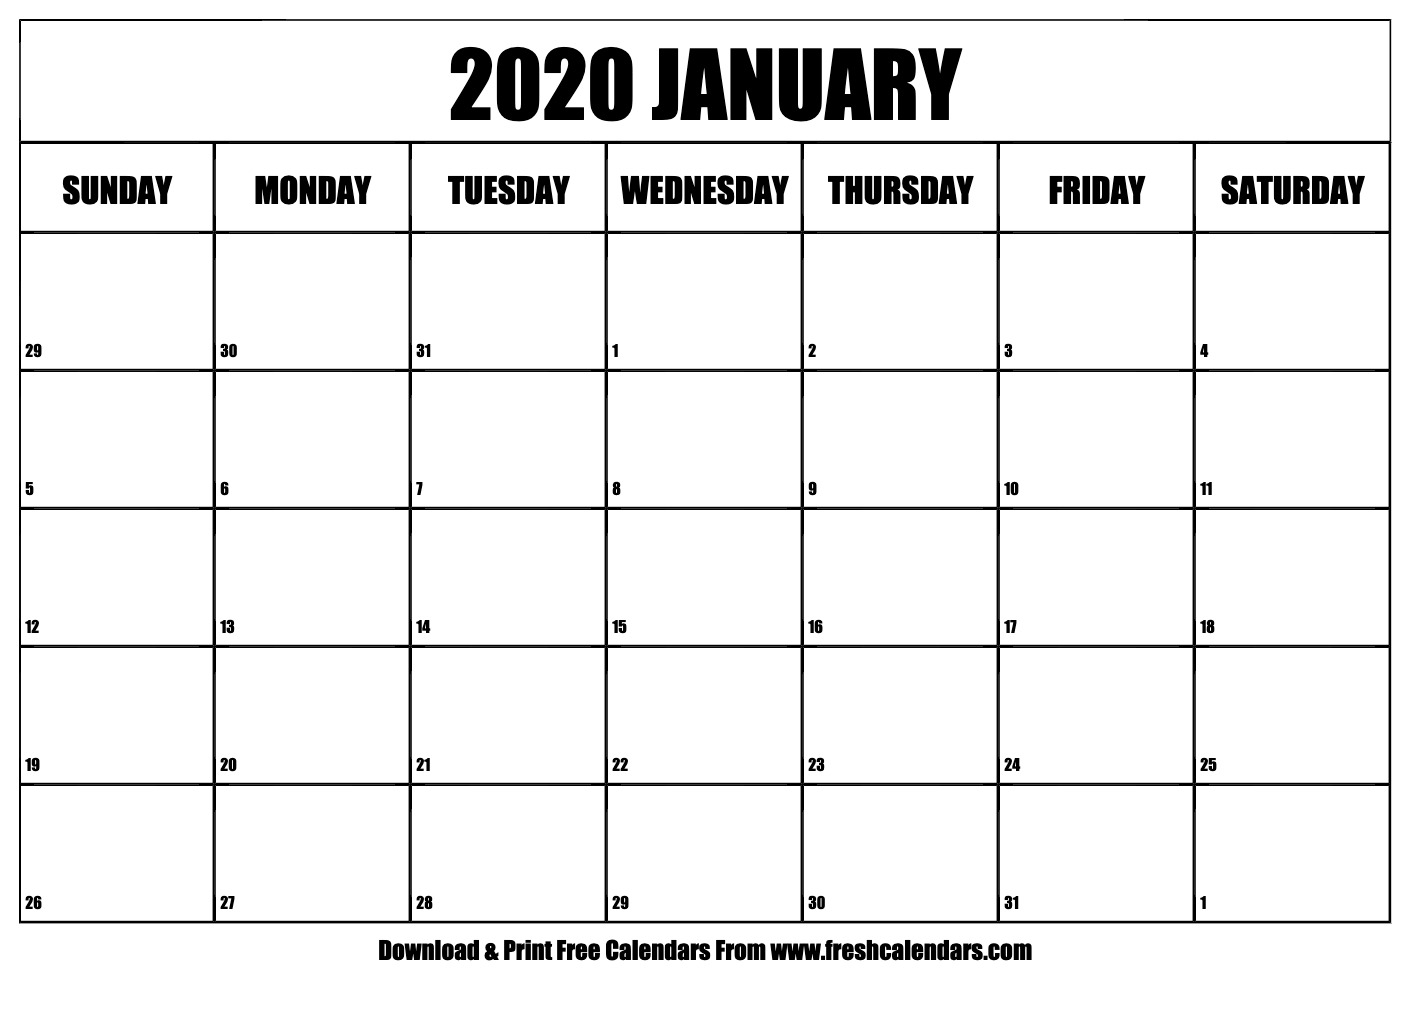 Free Printable January 2020 Calendar within January 2020 Waterproof Calendar